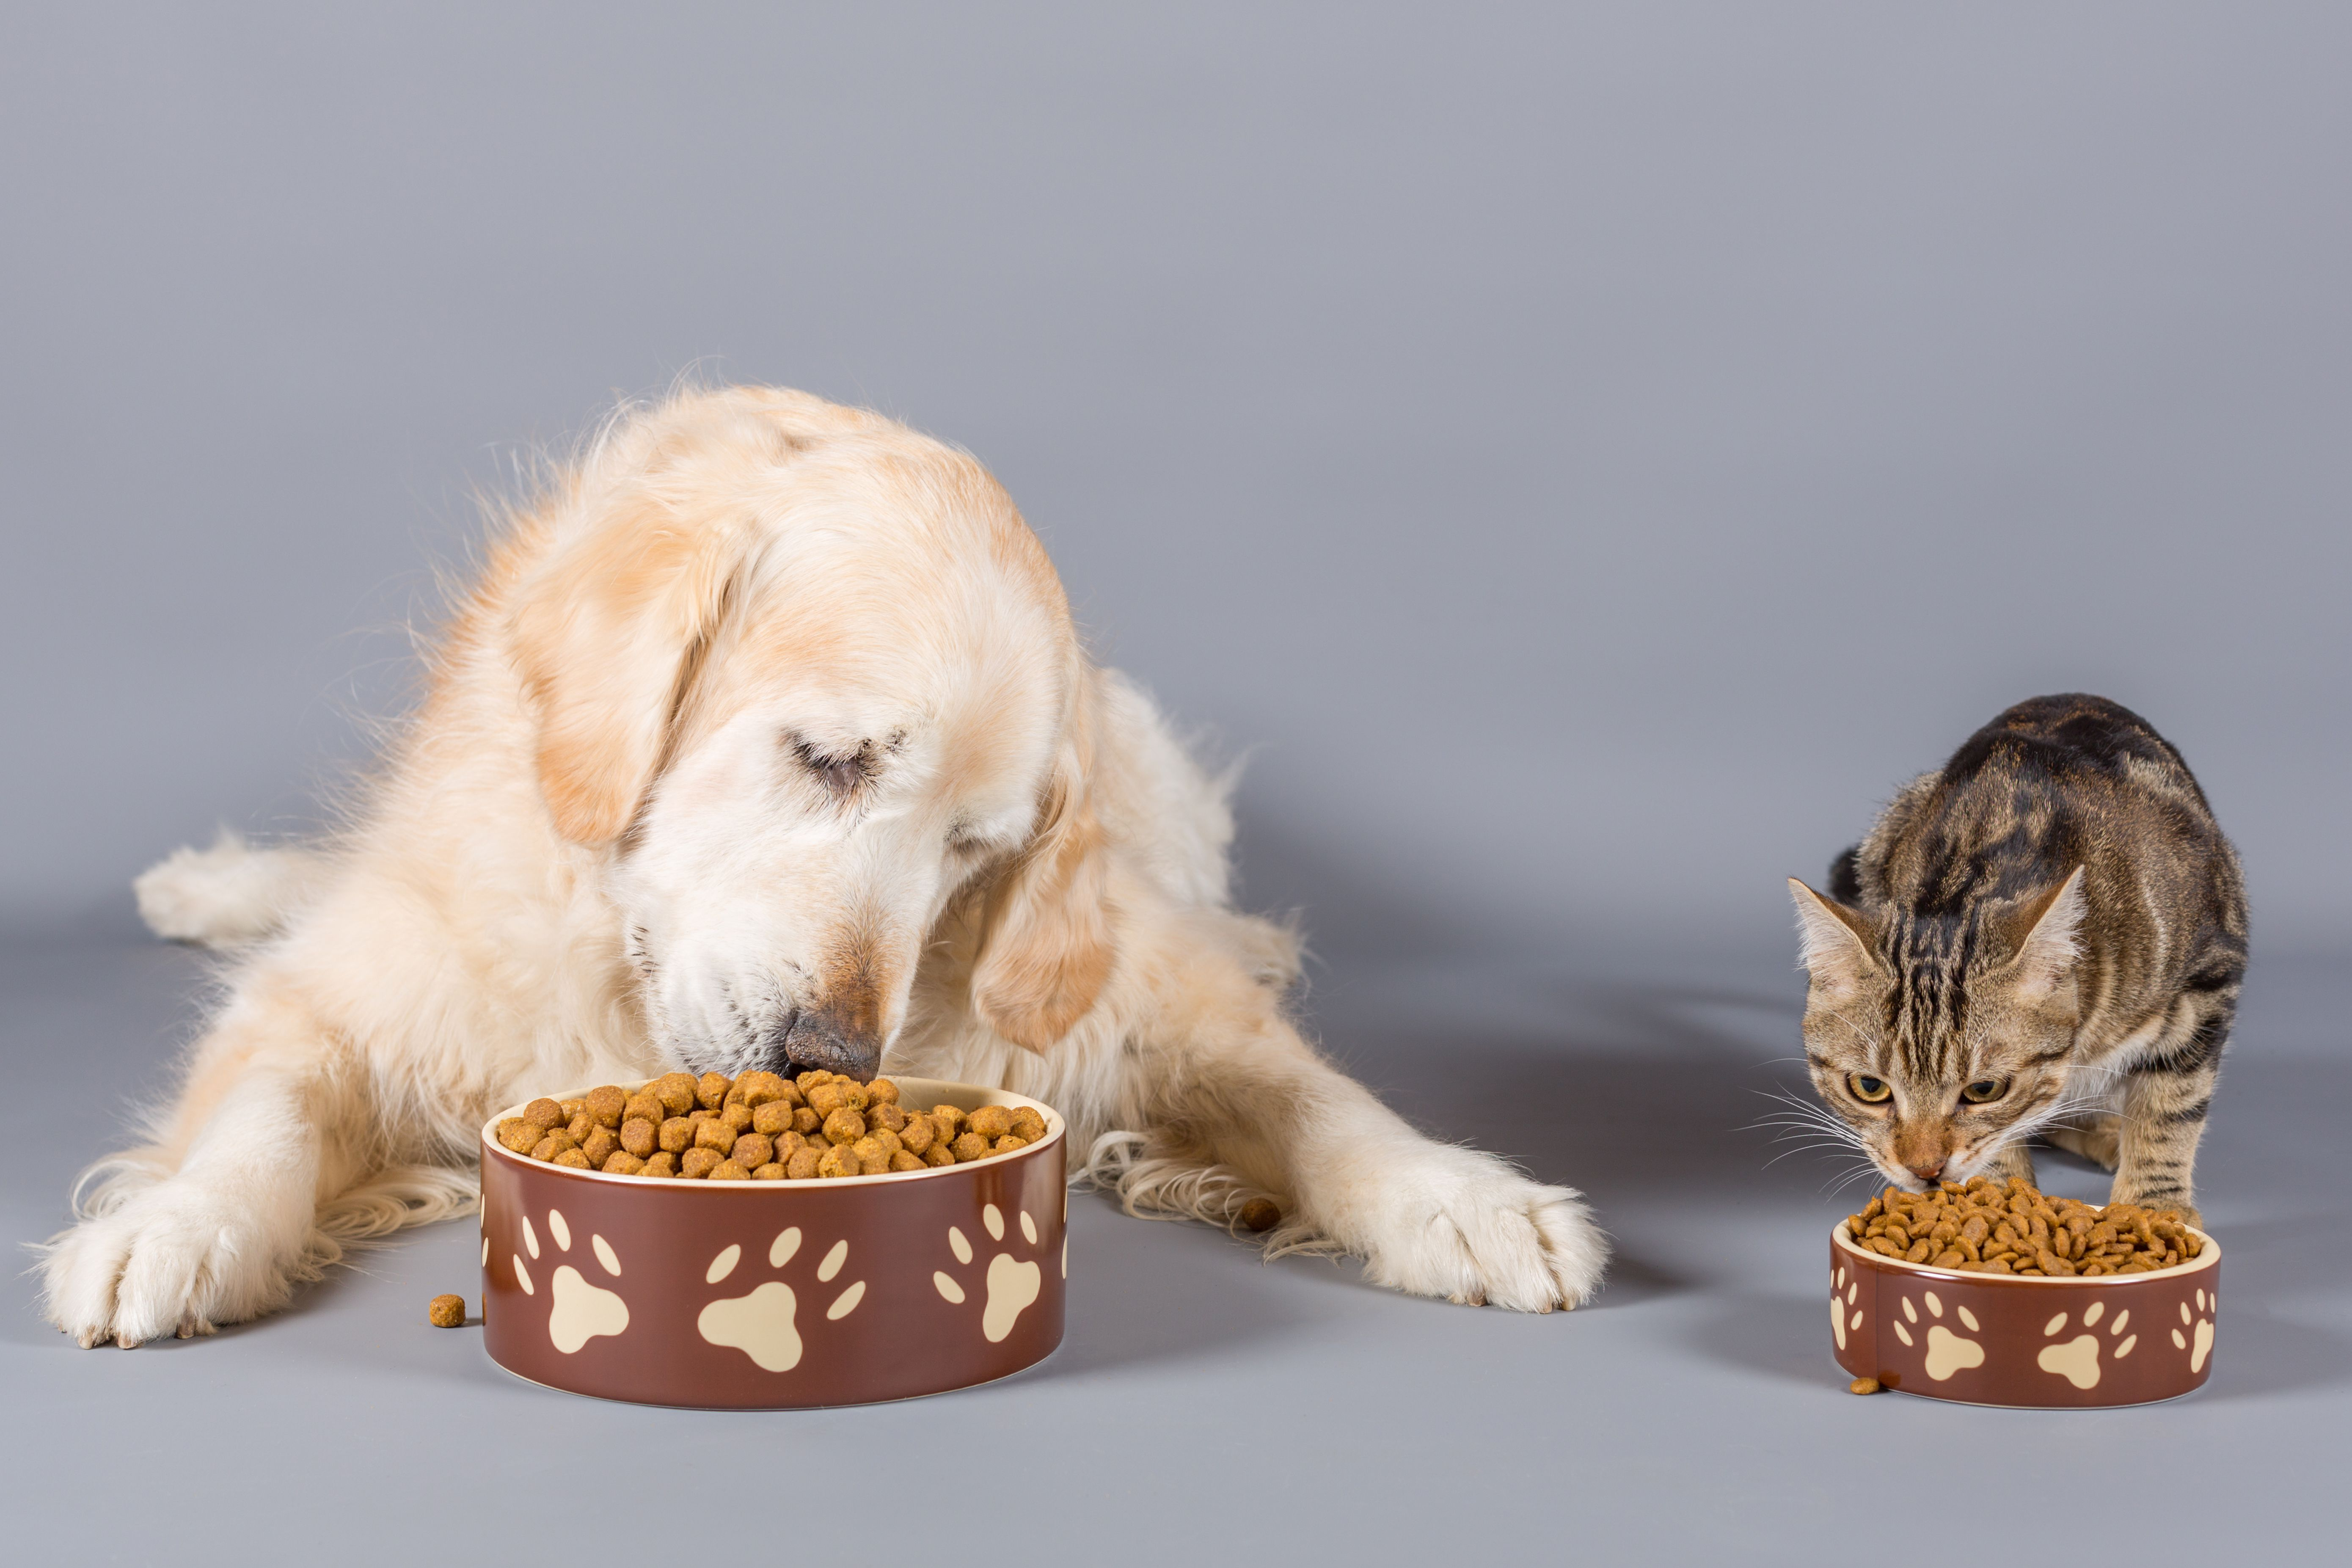 Can You Feed a Dog Cat Food?